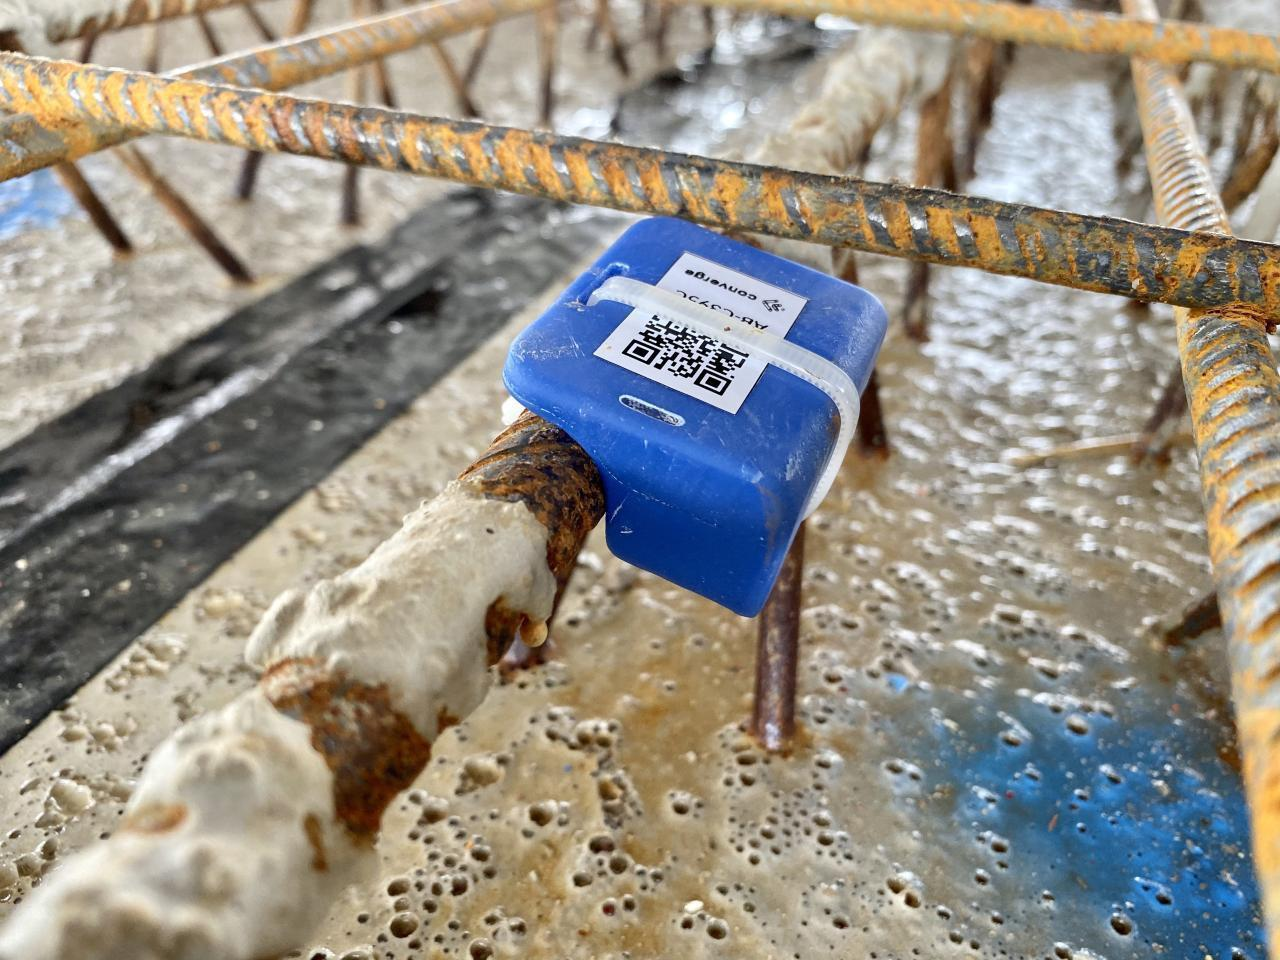 Concrete sensor in real environment. Photo by Converge.